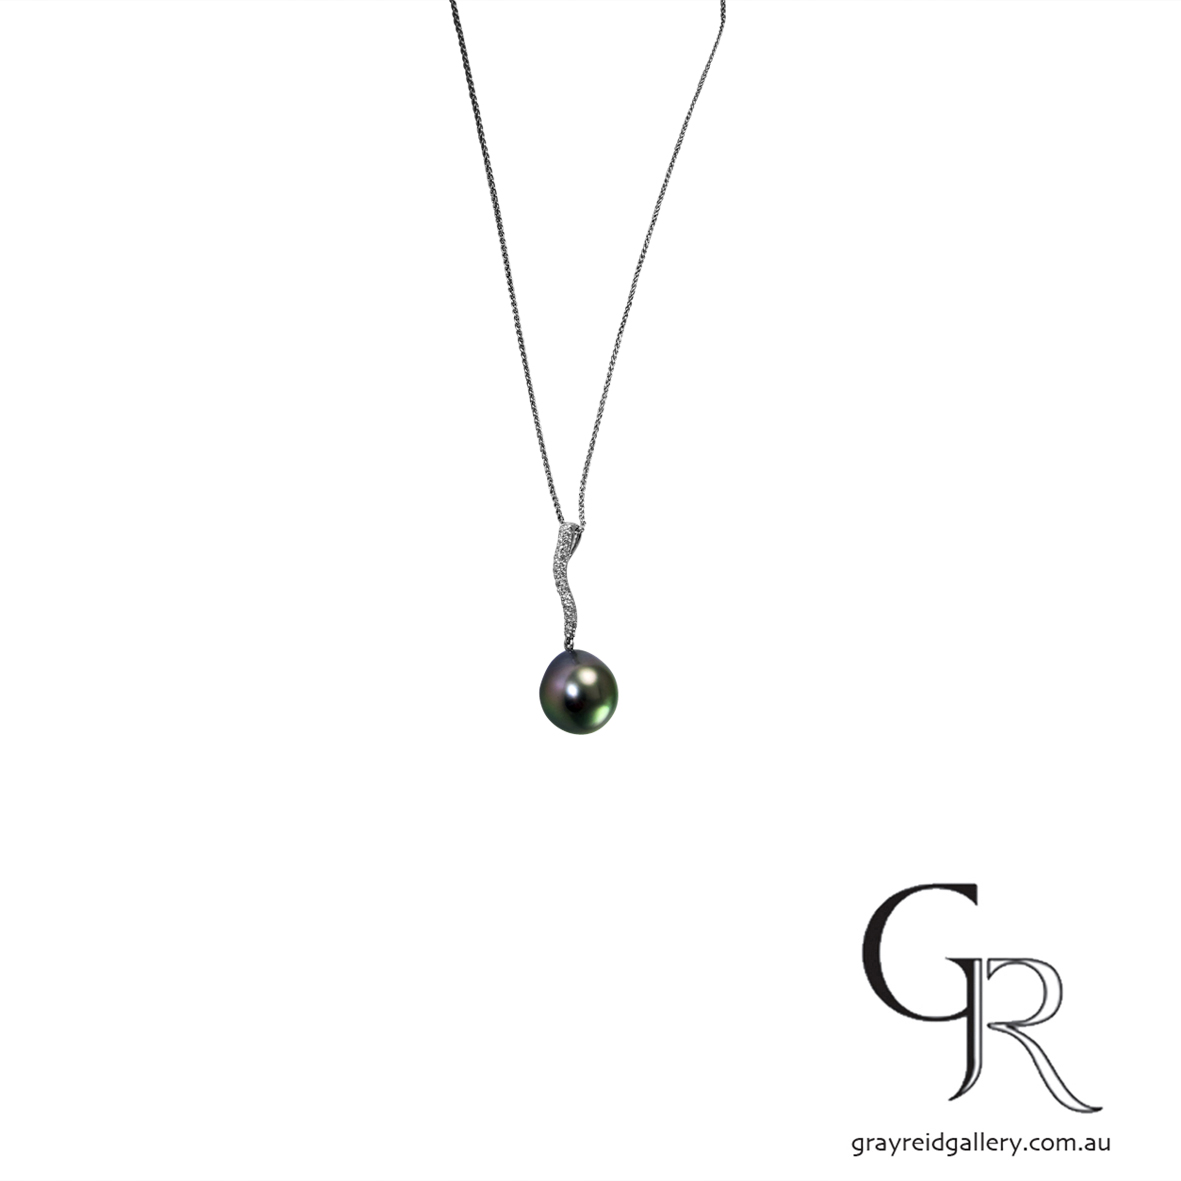 tahitian black pearl pendant diamonds.jpg